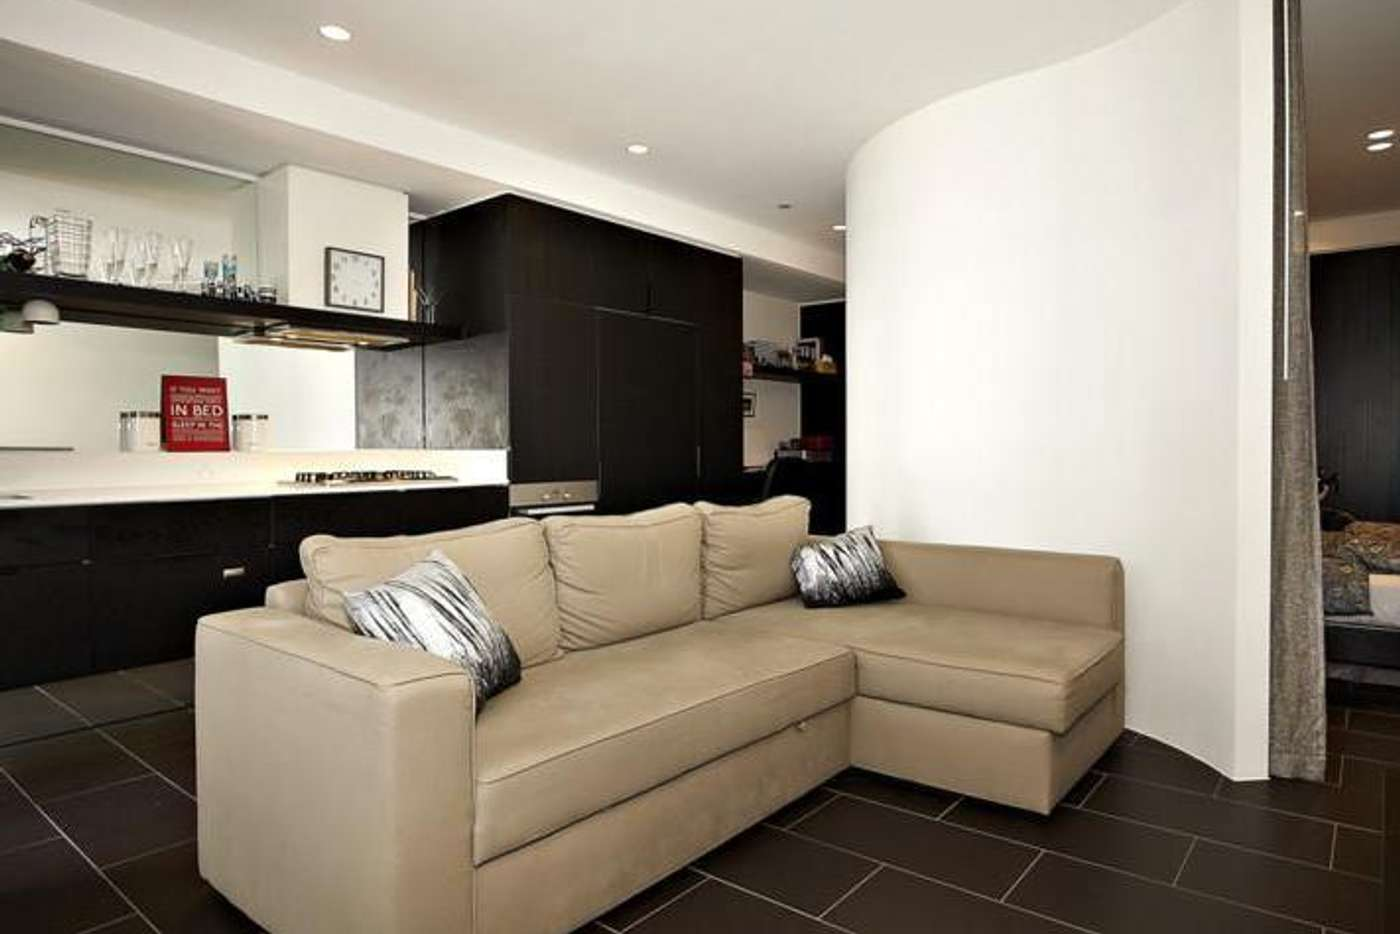 Main view of Homely apartment listing, 1412/22 Dorcas Street, Southbank VIC 3006